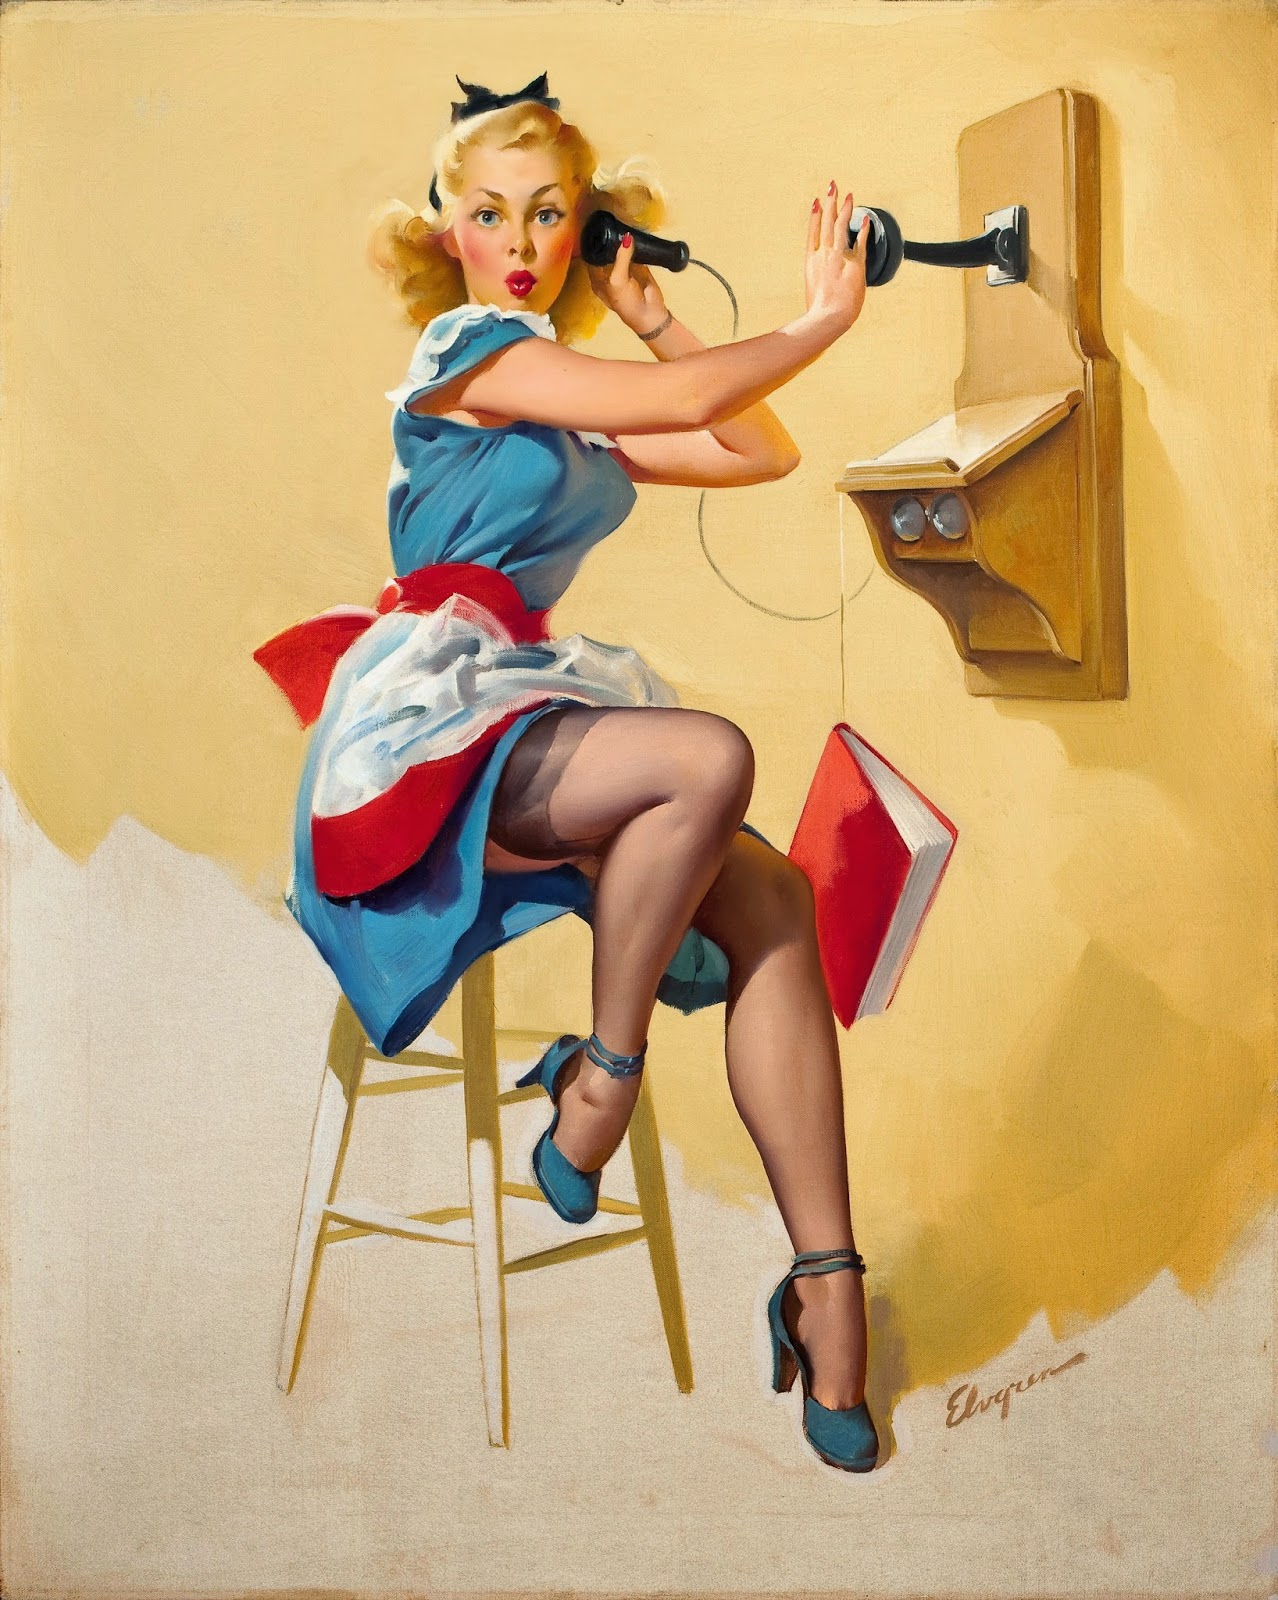 Gil elvgren pin up and cartoon girls art vintage and - Imagenes de glamour ...